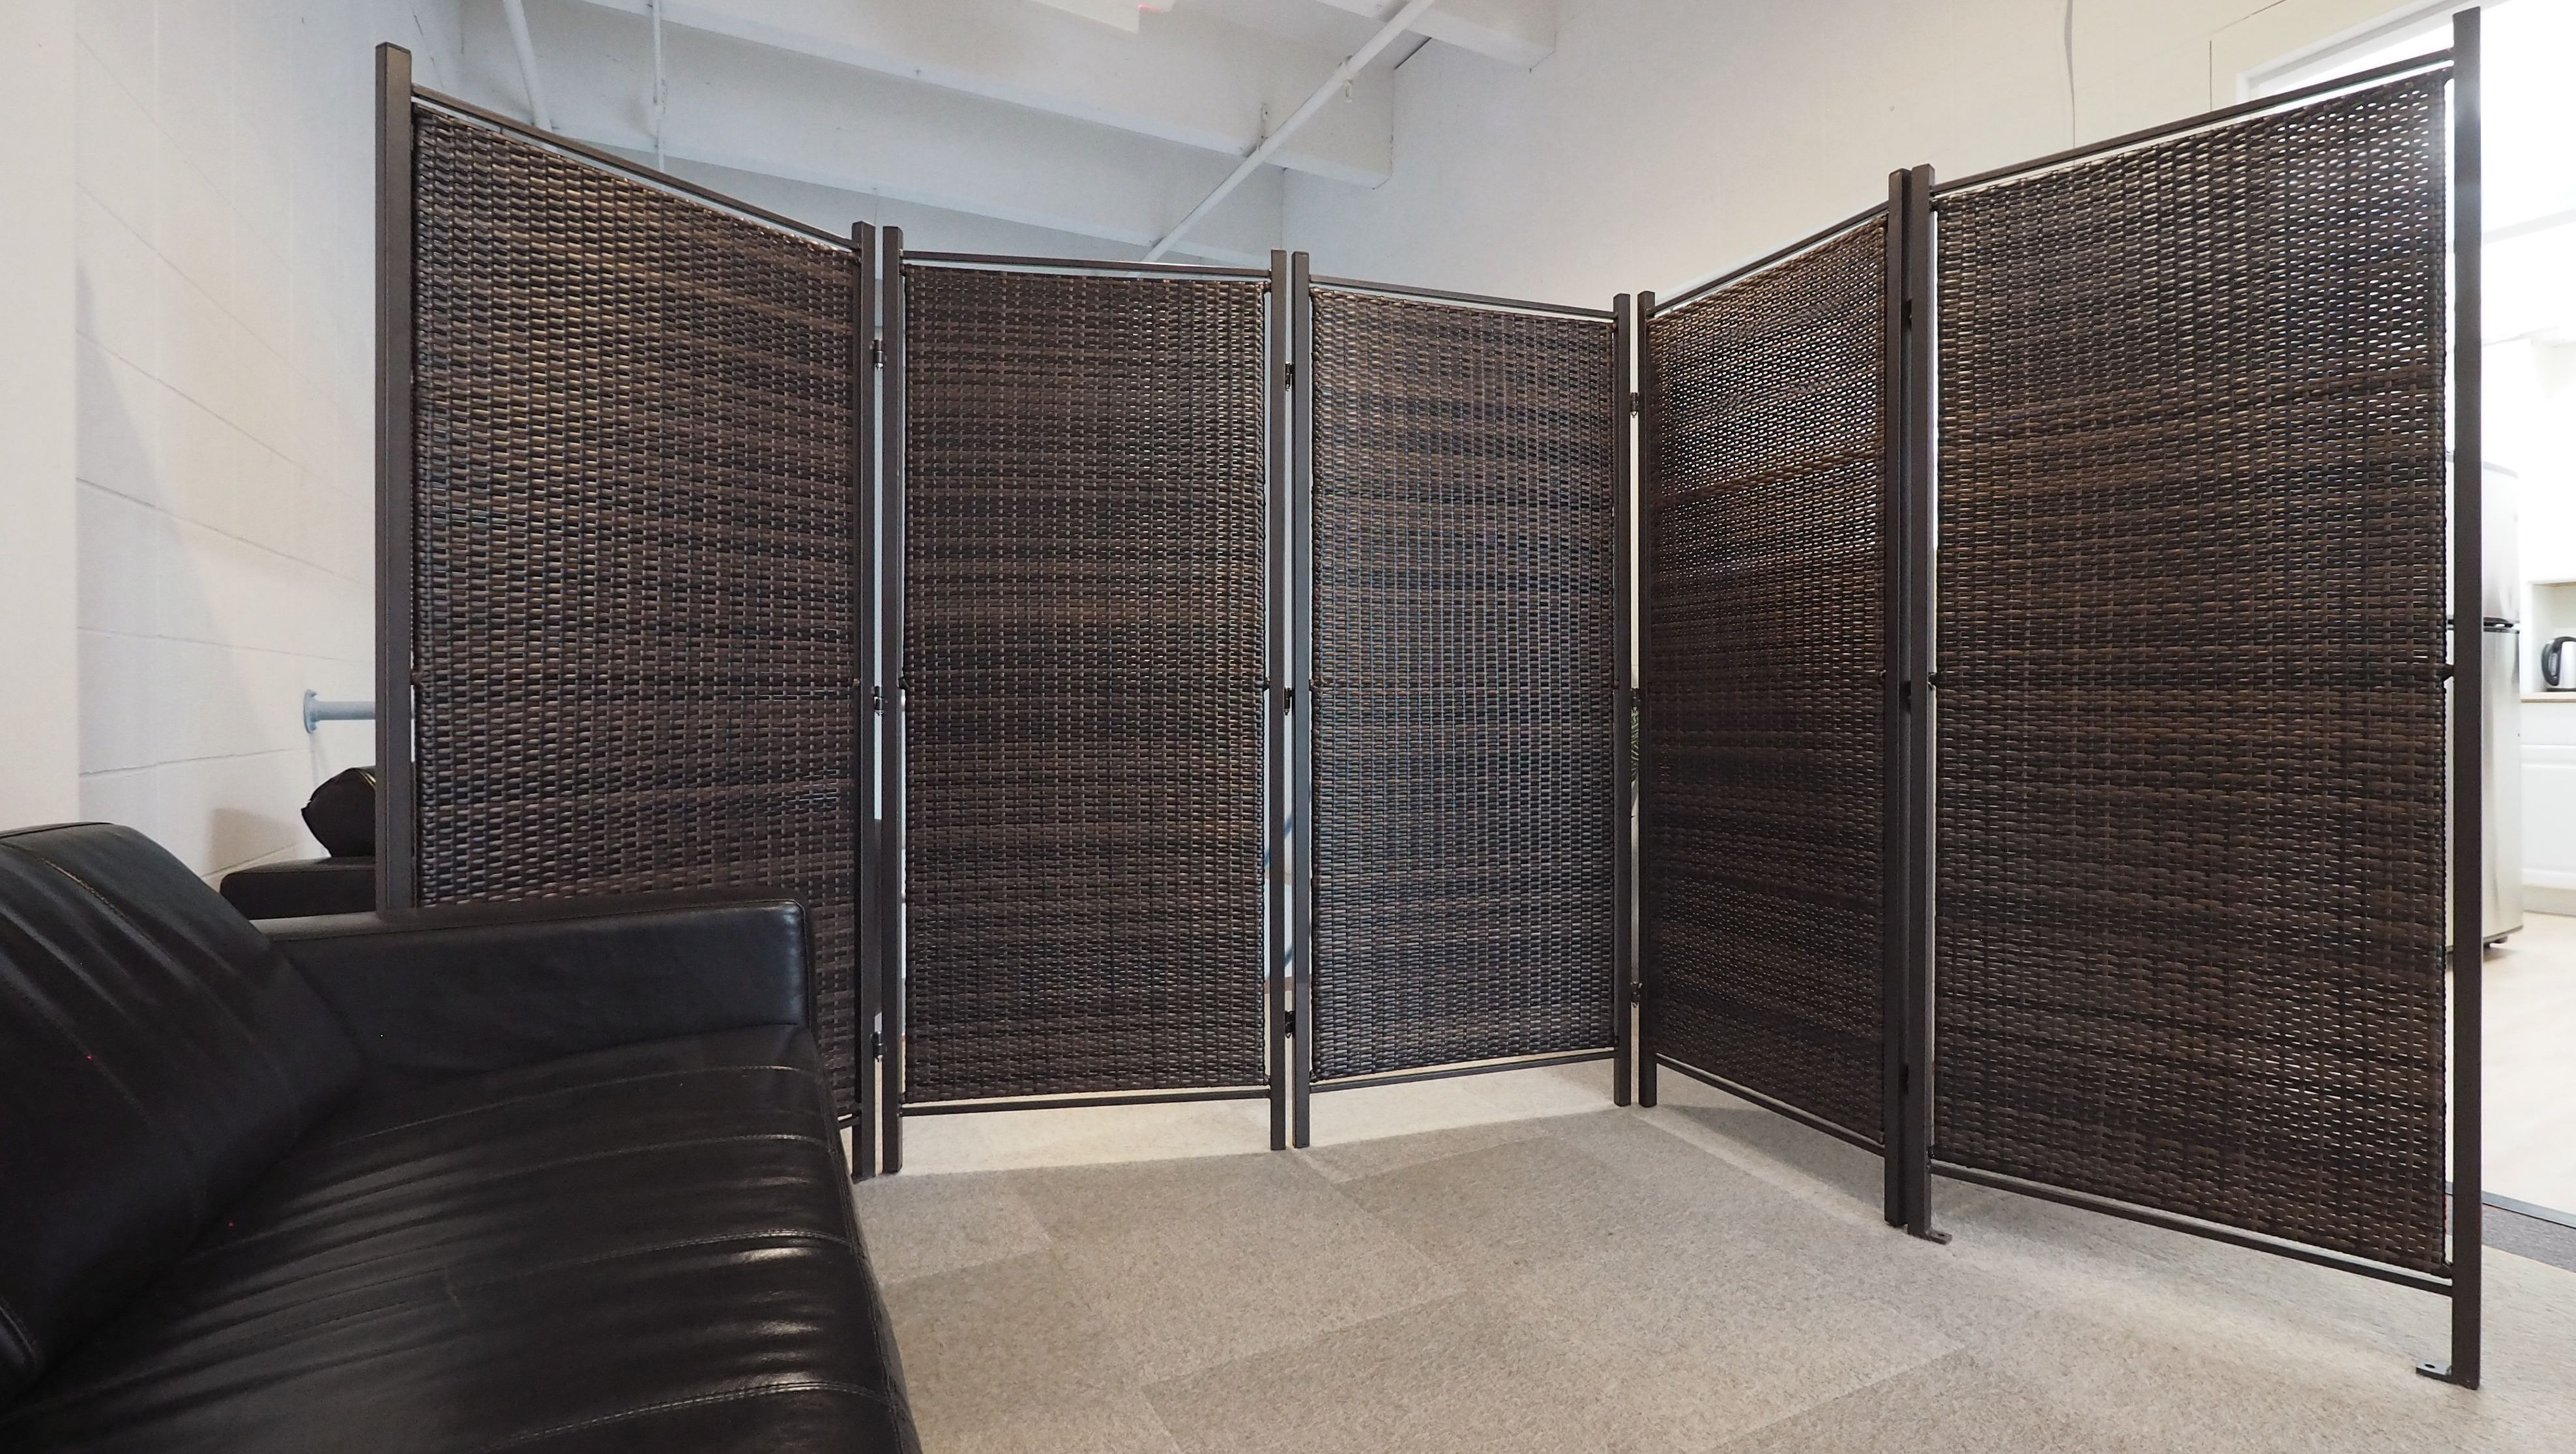 This stylish wicker partition is the perfect outdoor privacy